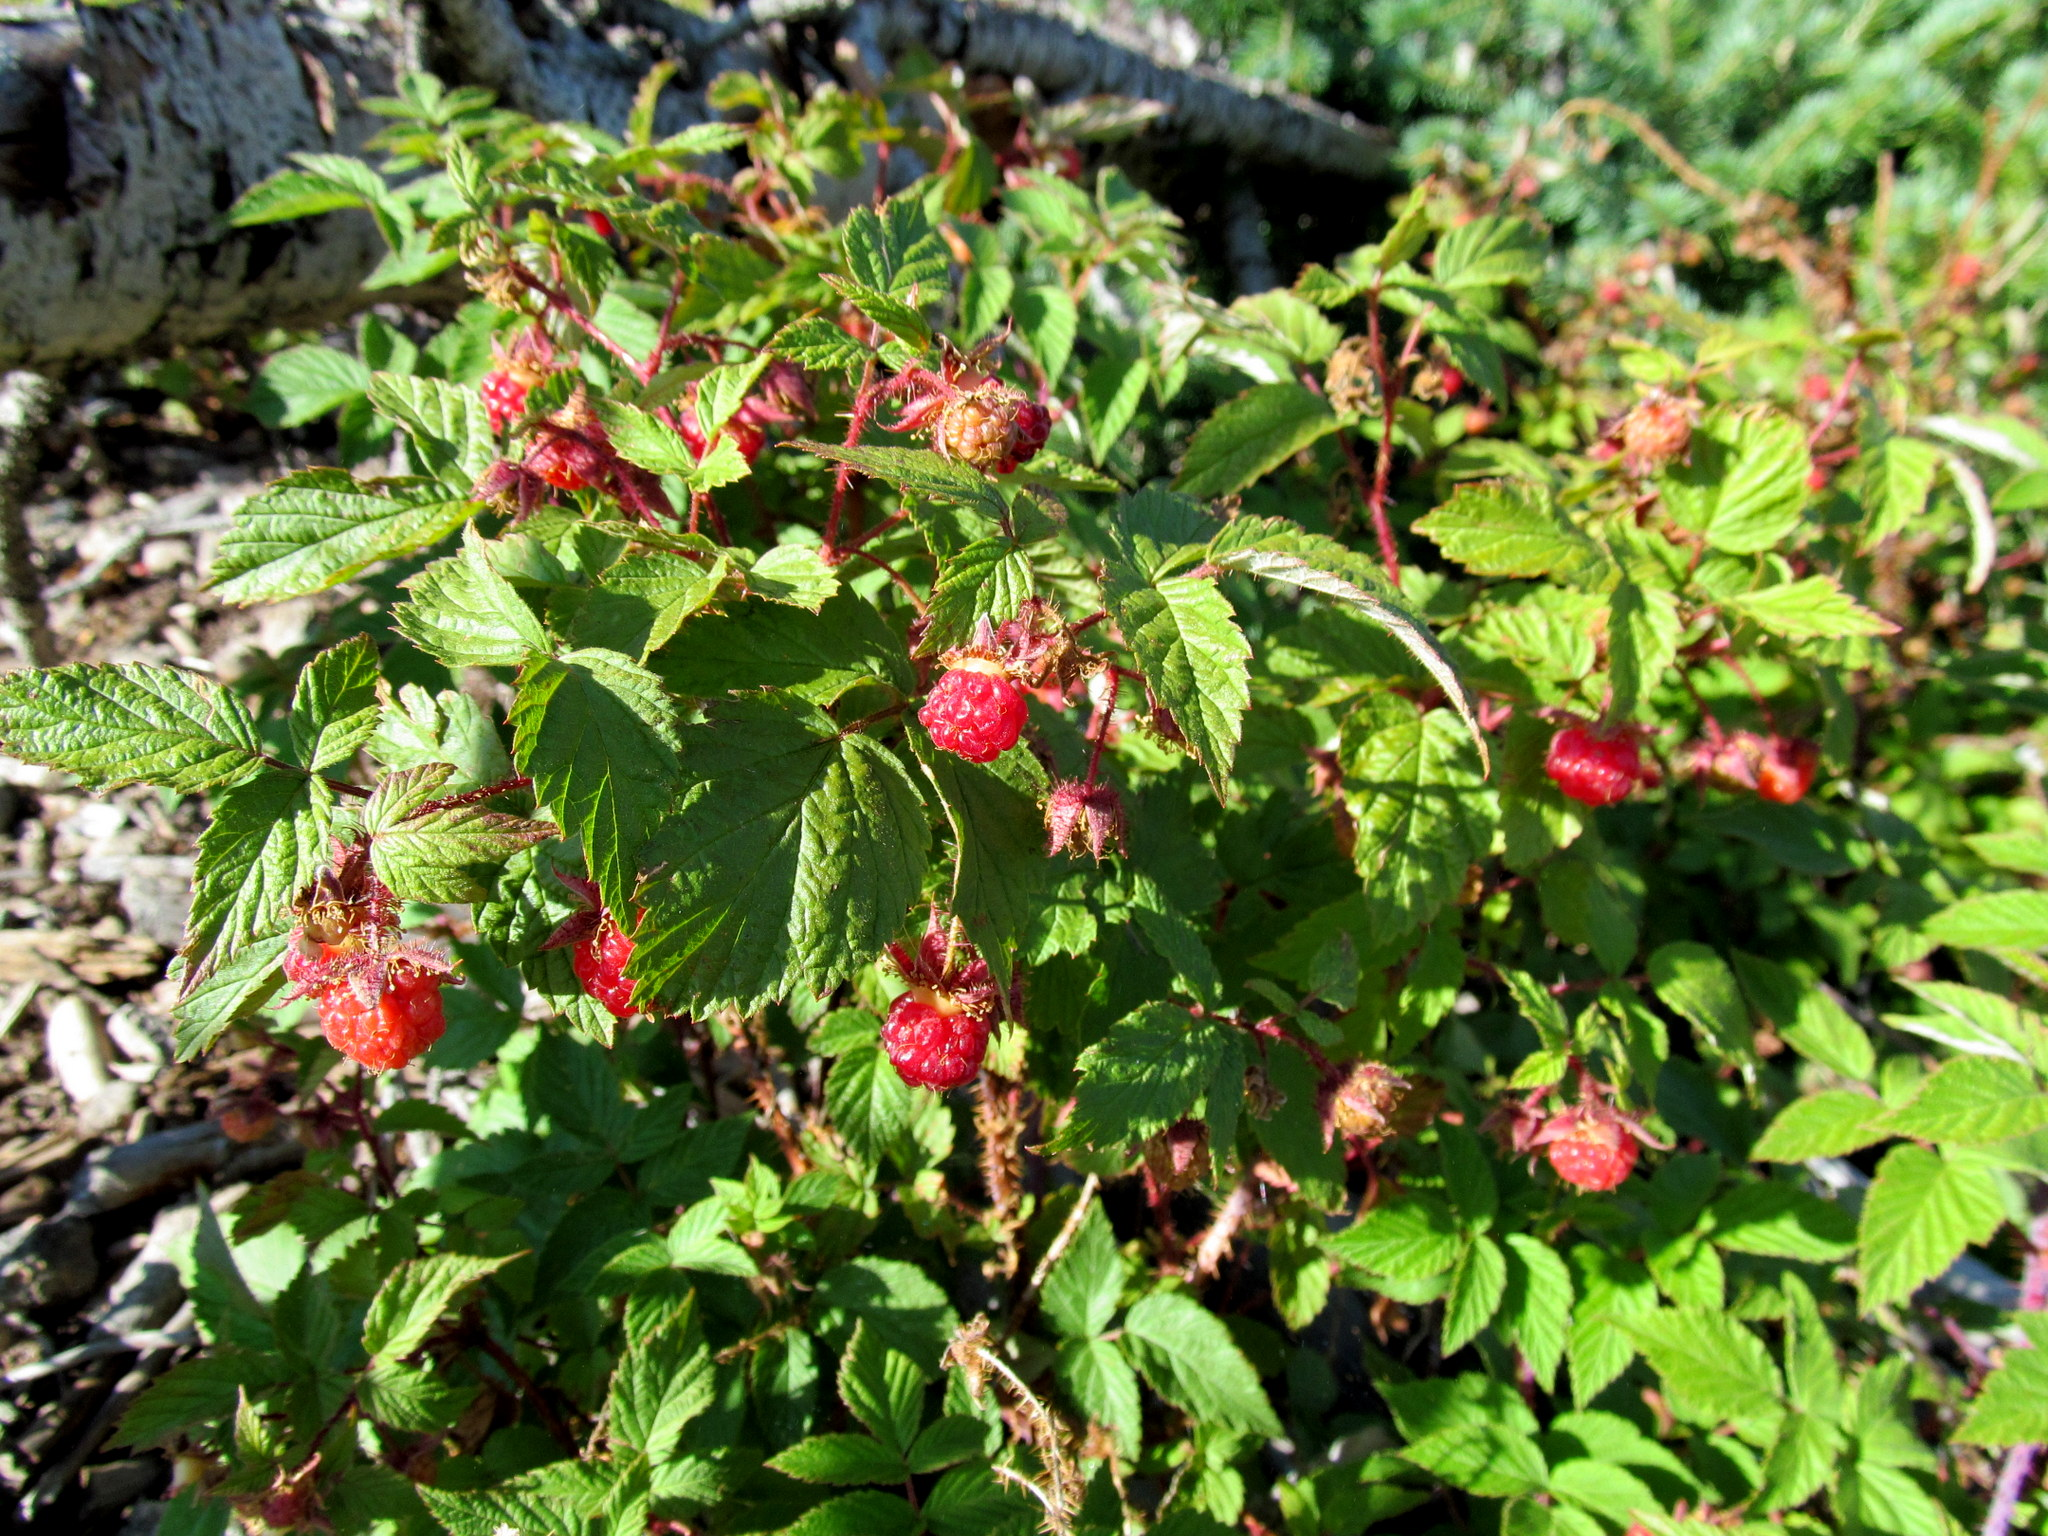 Photo: Wild raspberries